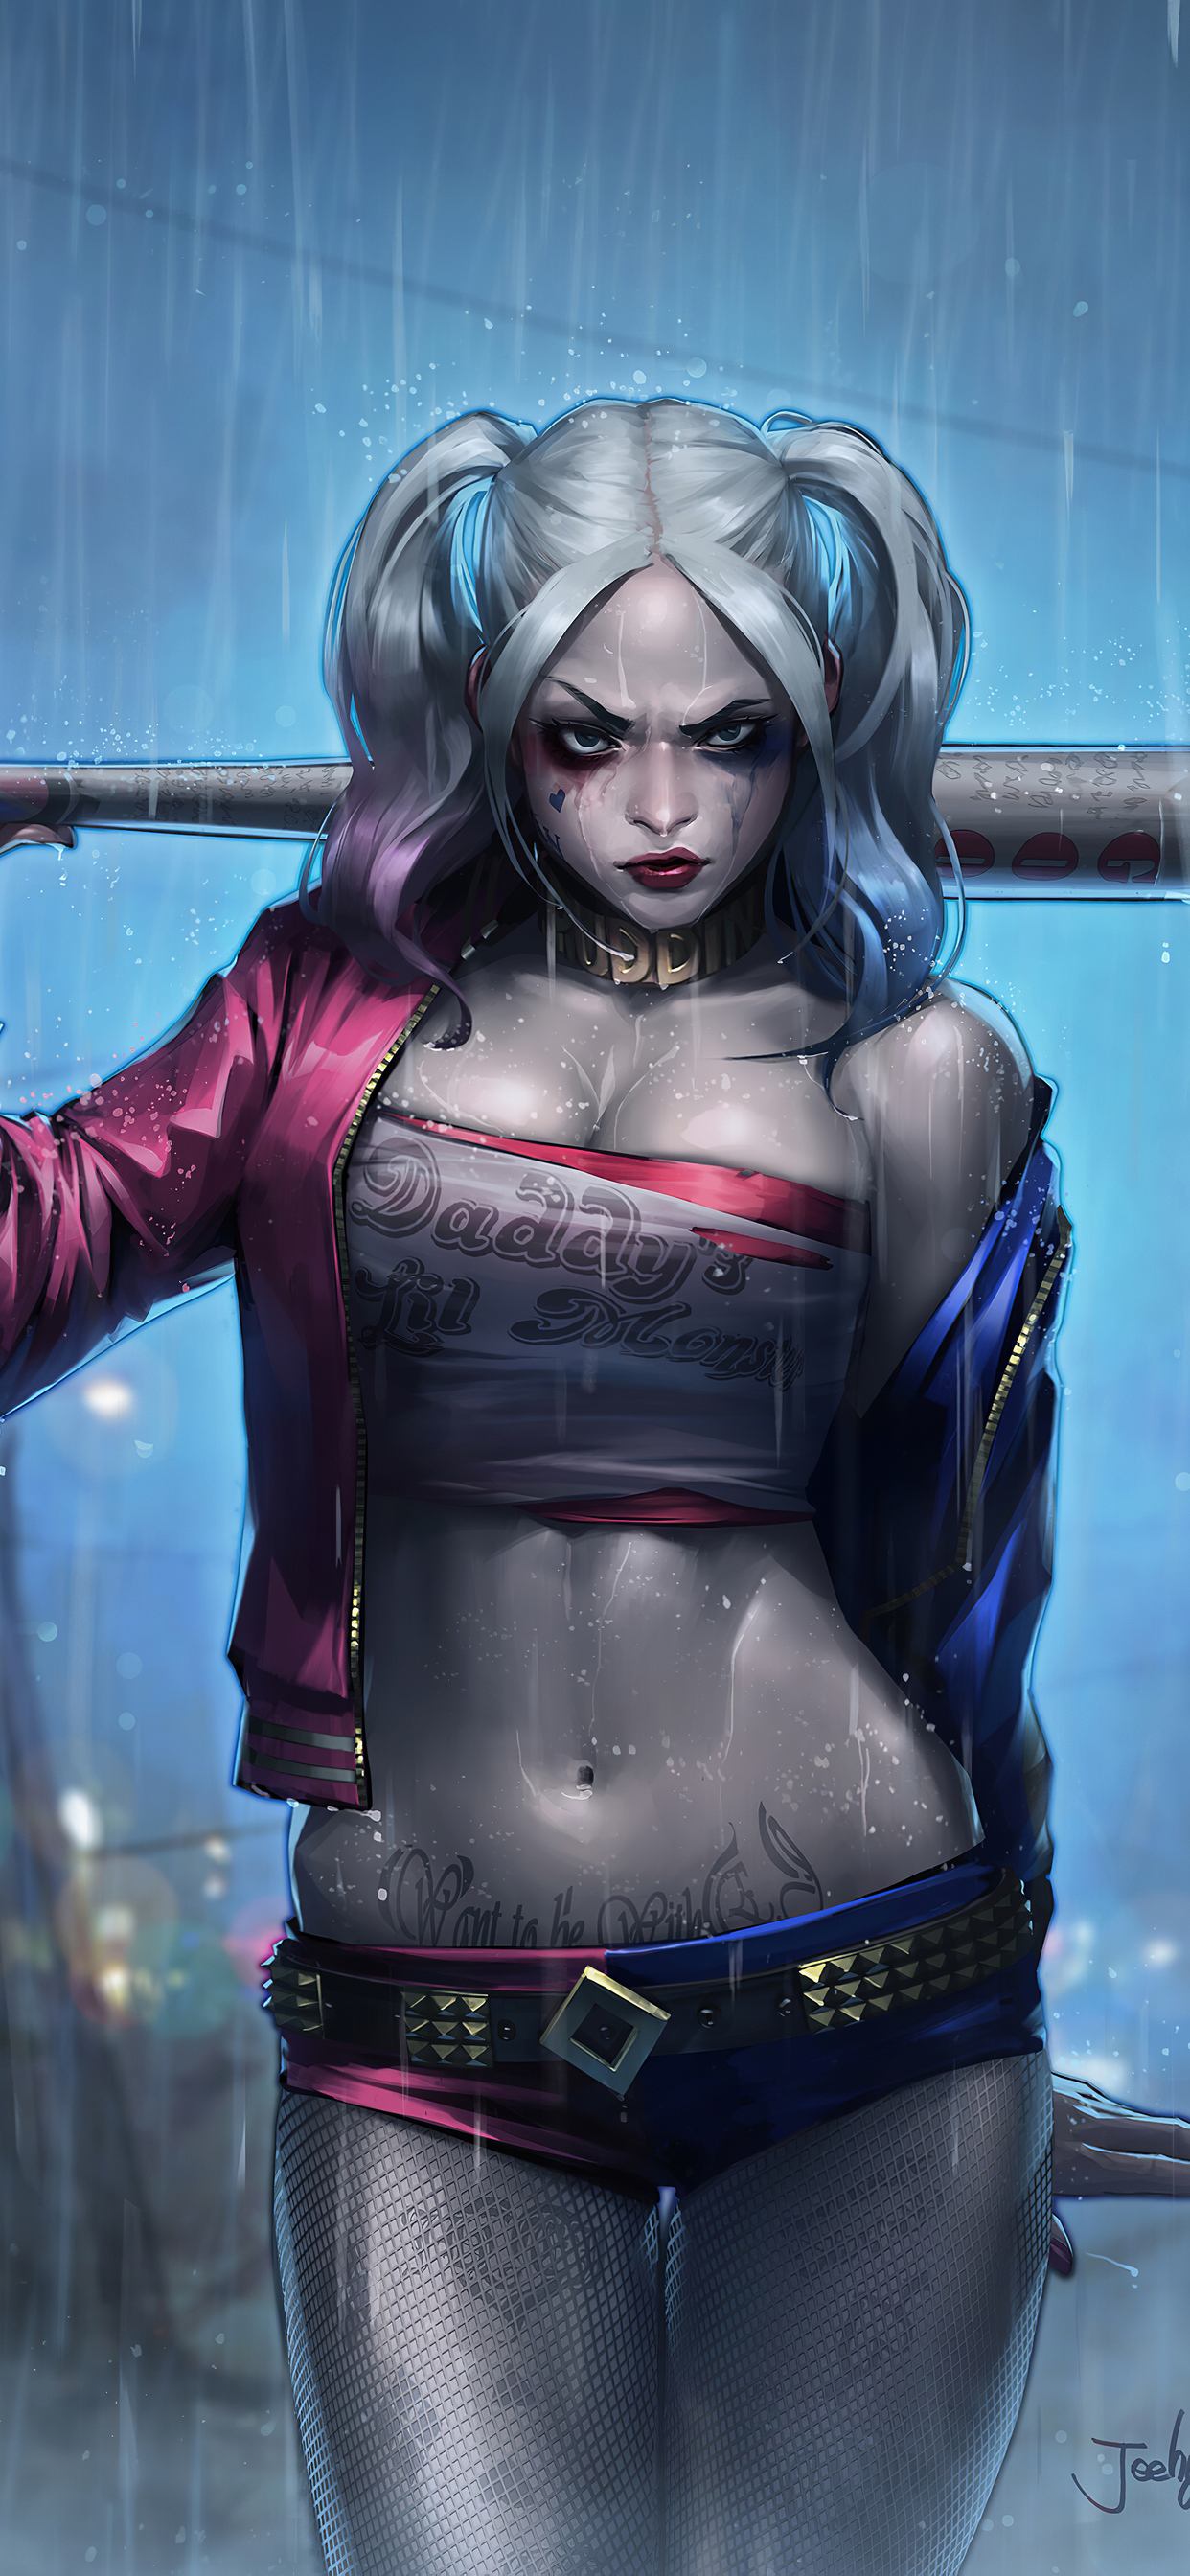 Iphone Harley Quinn Hd Wallpaper 4k